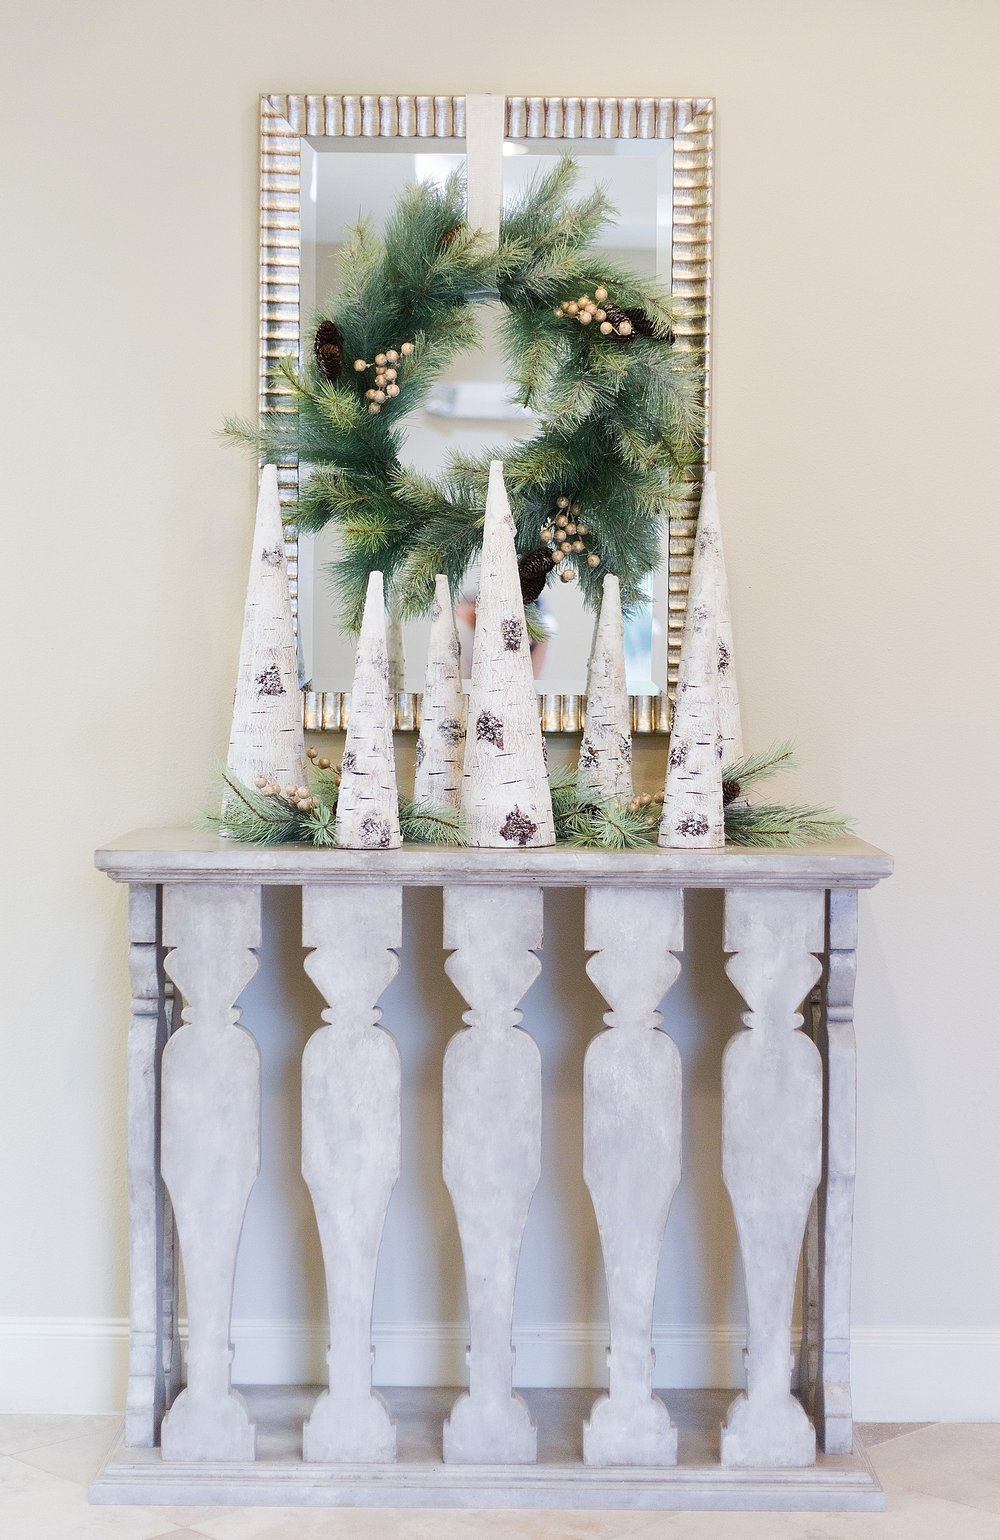 Christmas Woodlands Holiday Decorating - console decor with wreath on mirror / Designed w/ Carla Aston #christmasdecor